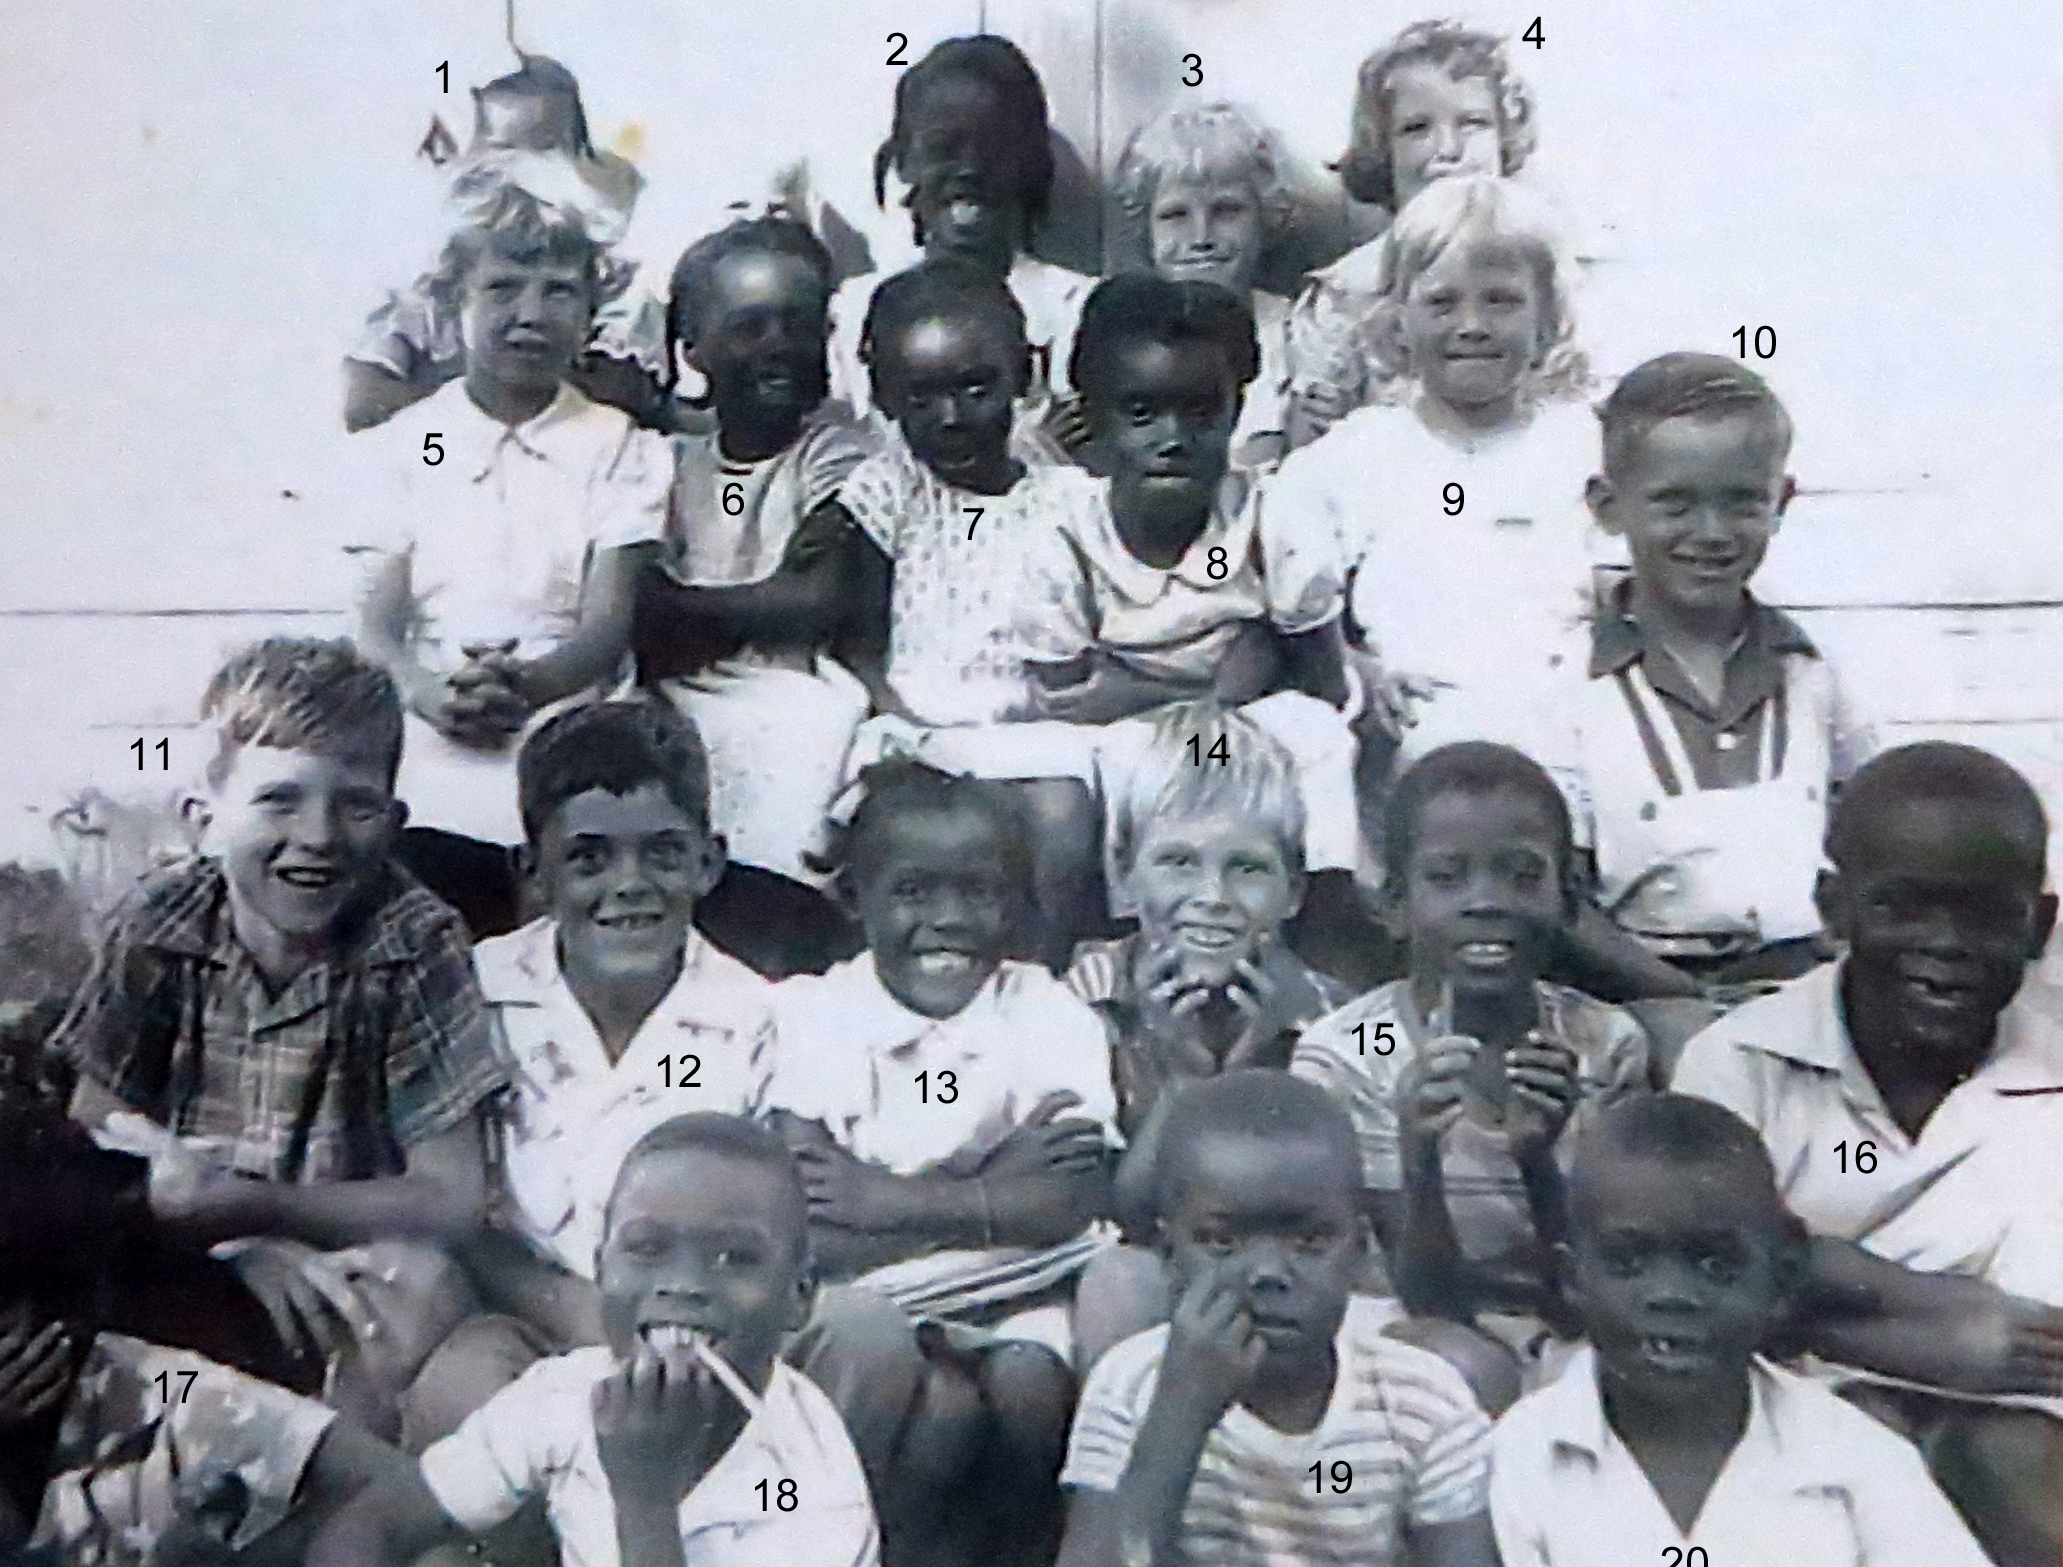 Can you help identify these kids?